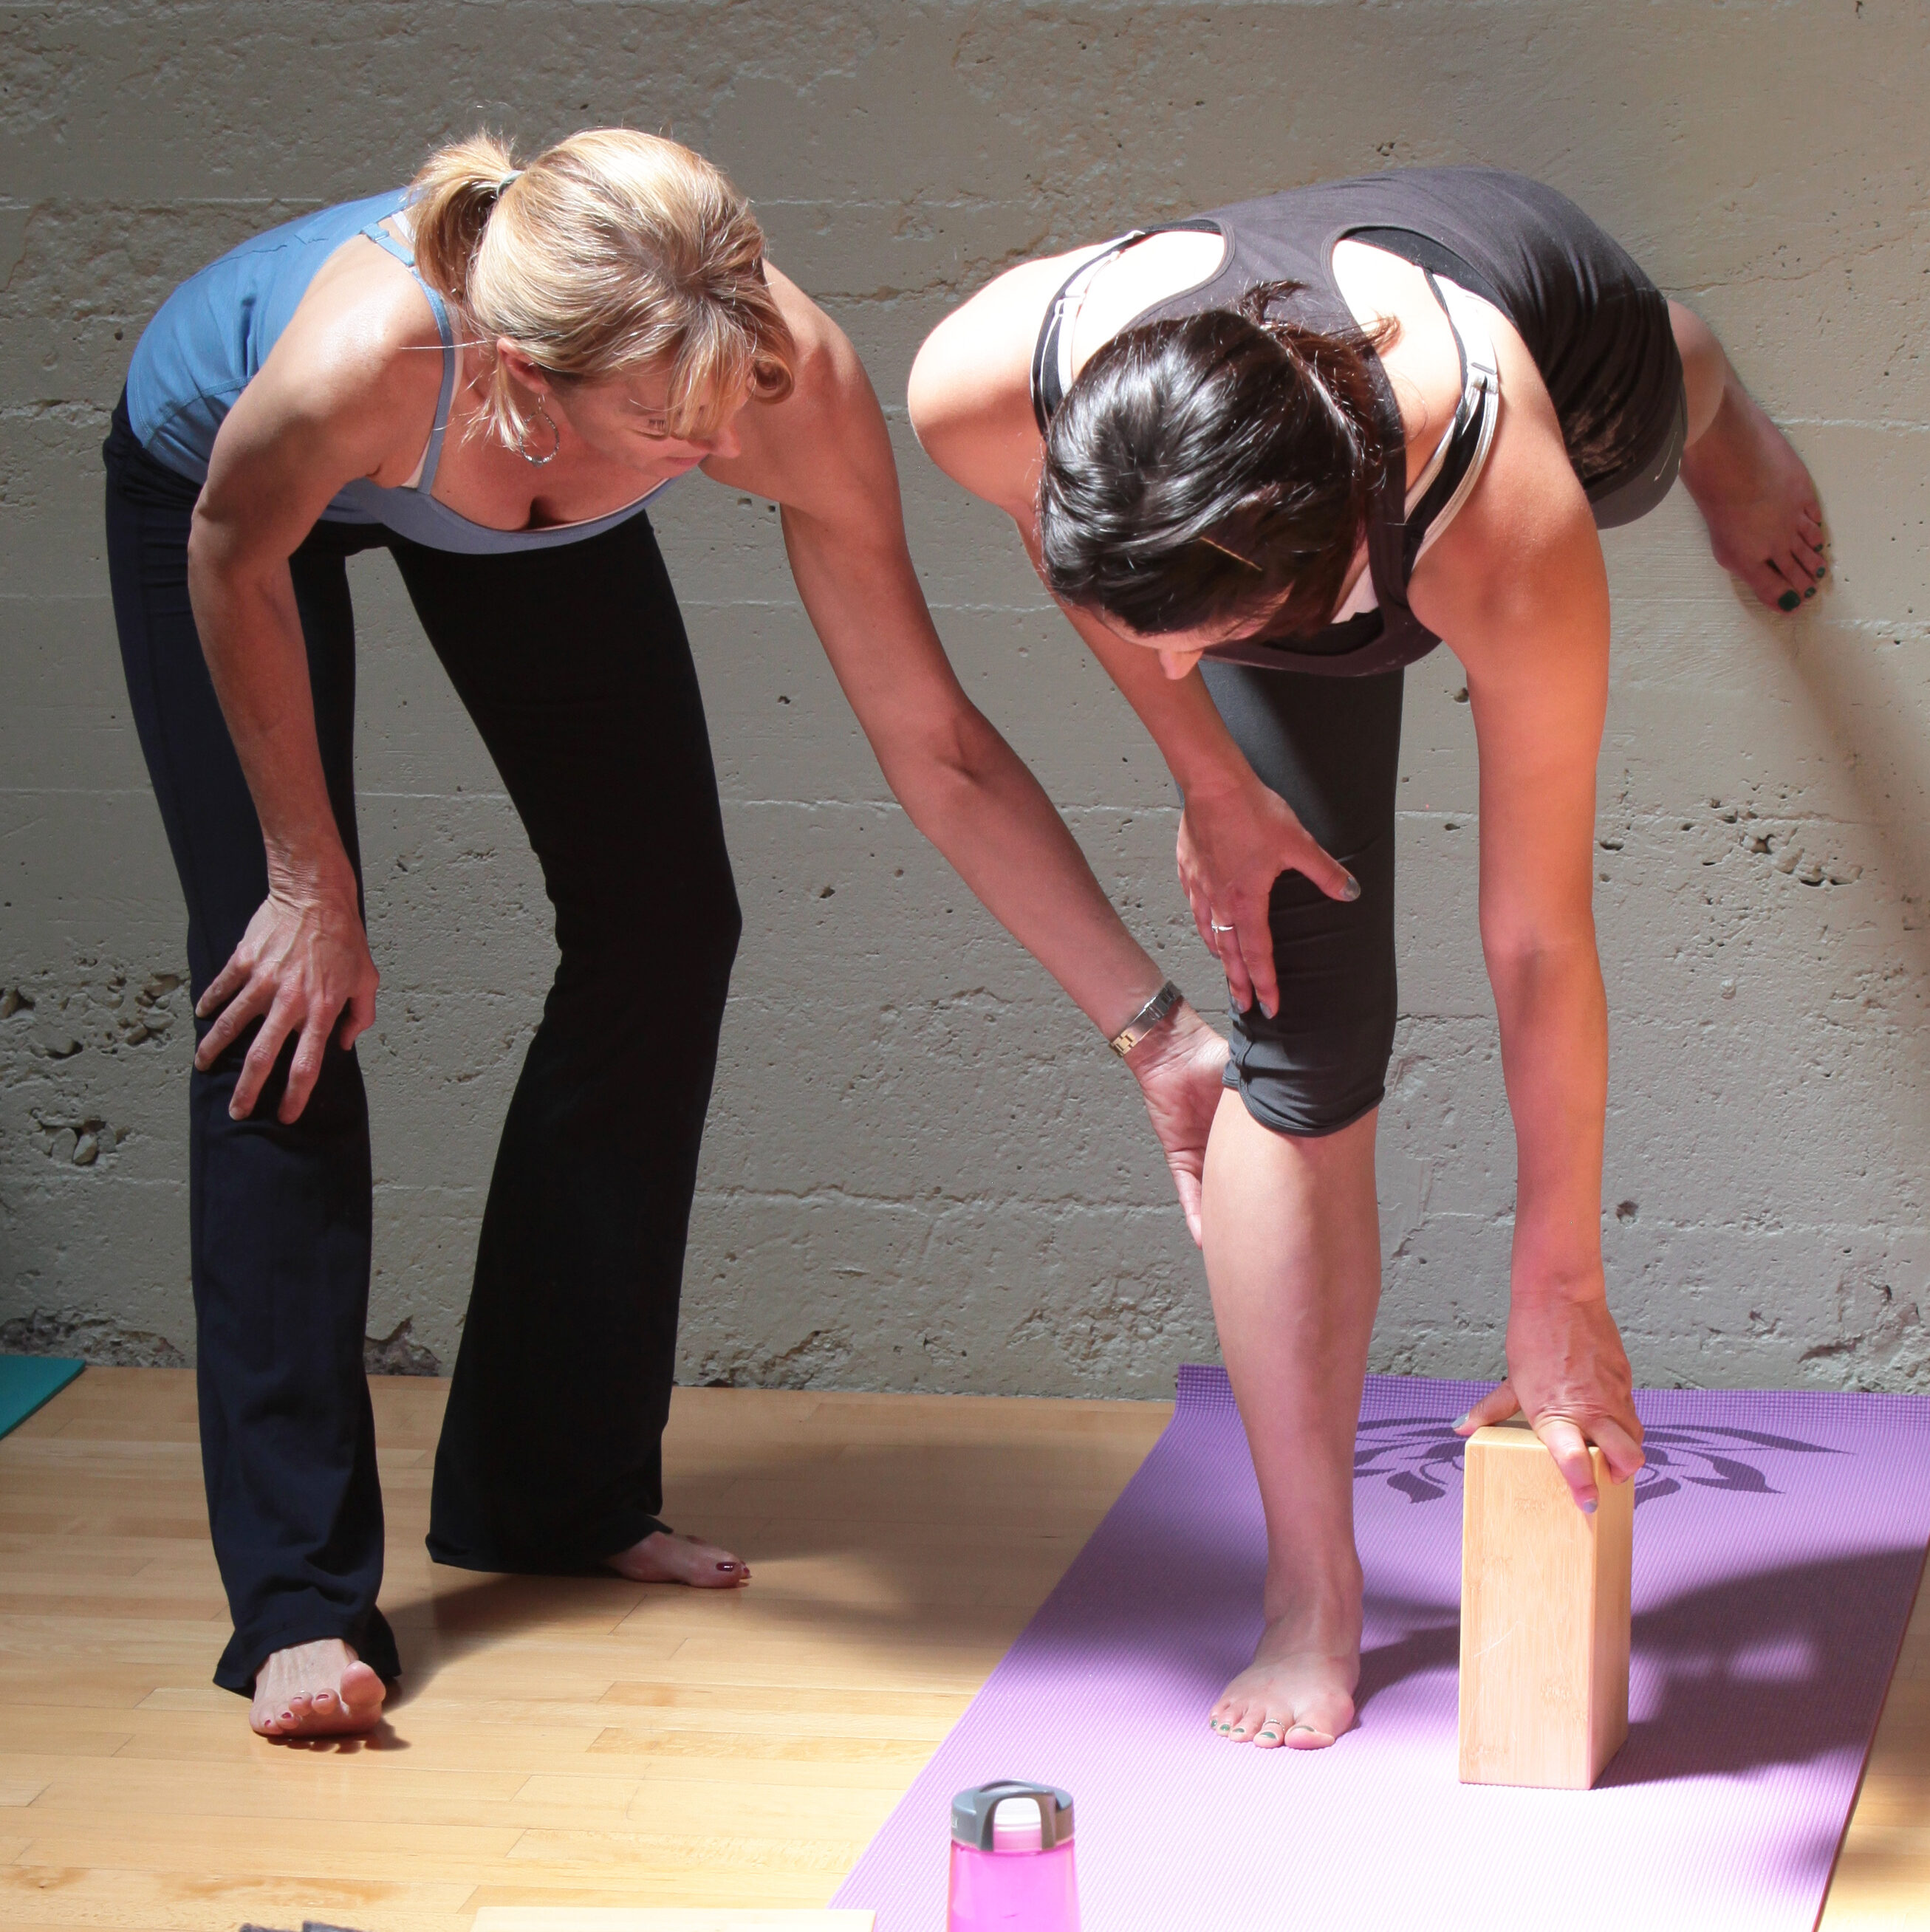 erika teaching a yoga student the correct position for a pose